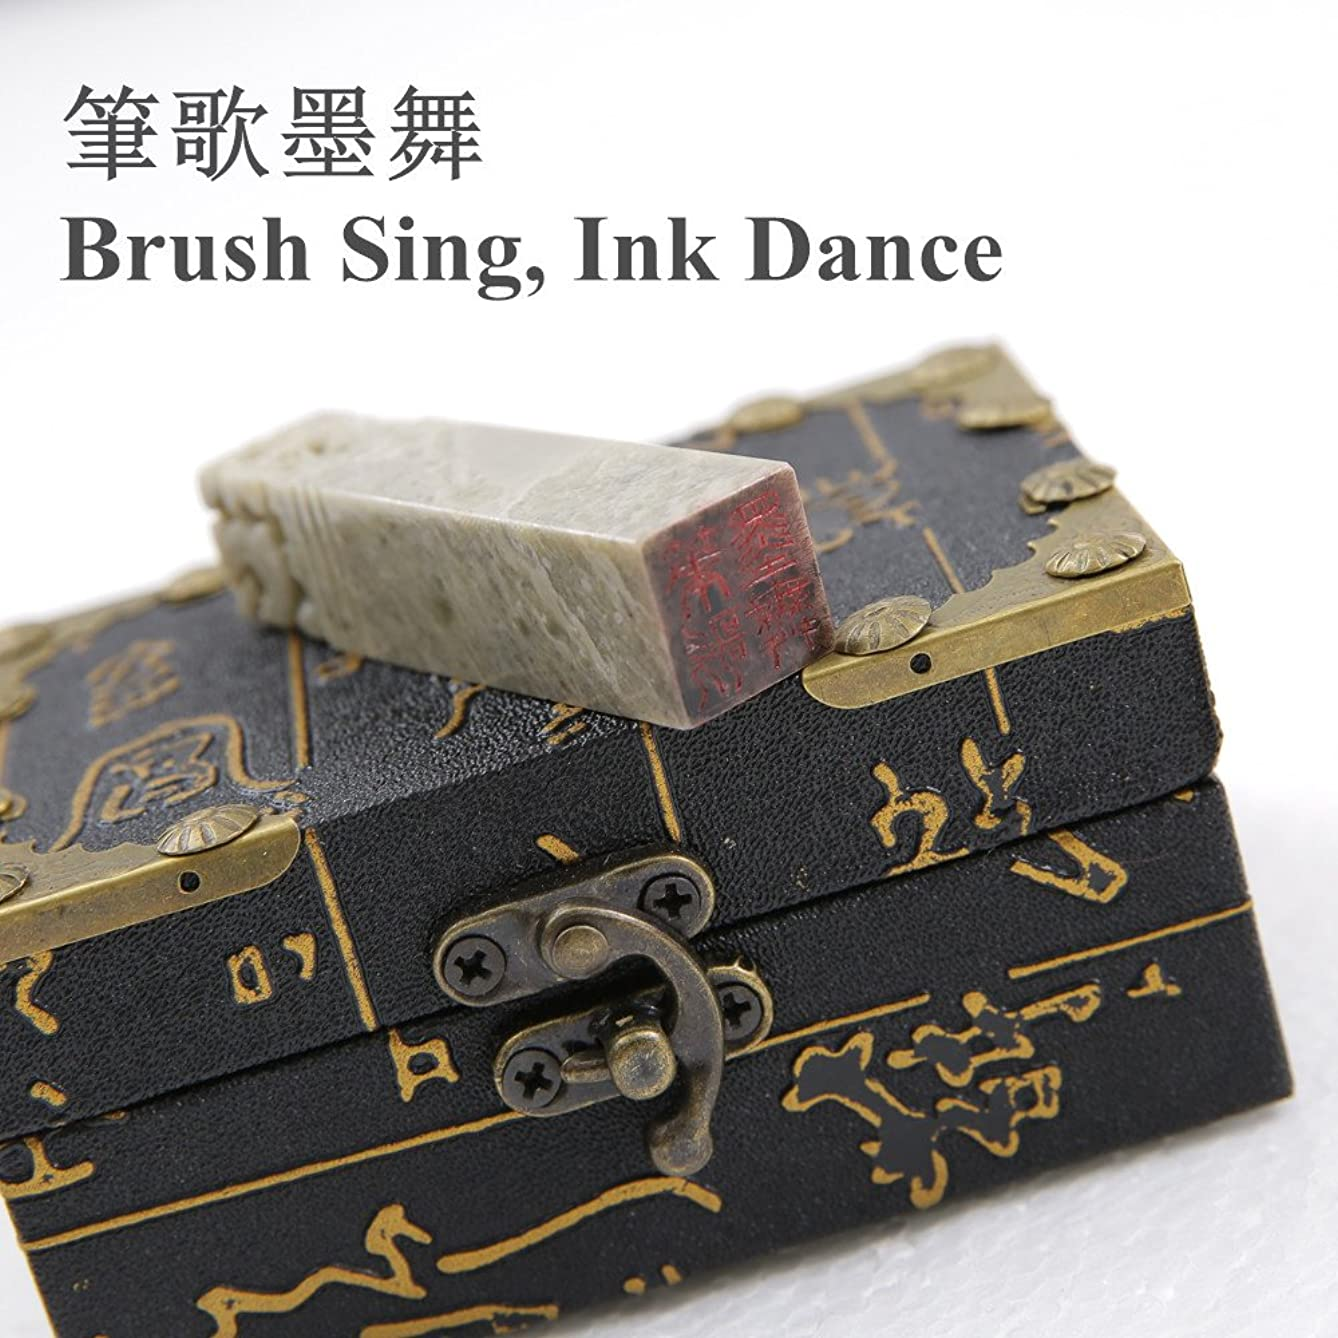 YZ110 Hmayart Chinese Mood Seal/Handmade Traditional Art Stamp Chop for Brush Calligraphy and Sumie Painting and Gongbi Fine Artworks / - Be Ge Mo Wu (Brush Sing, Ink Dance)